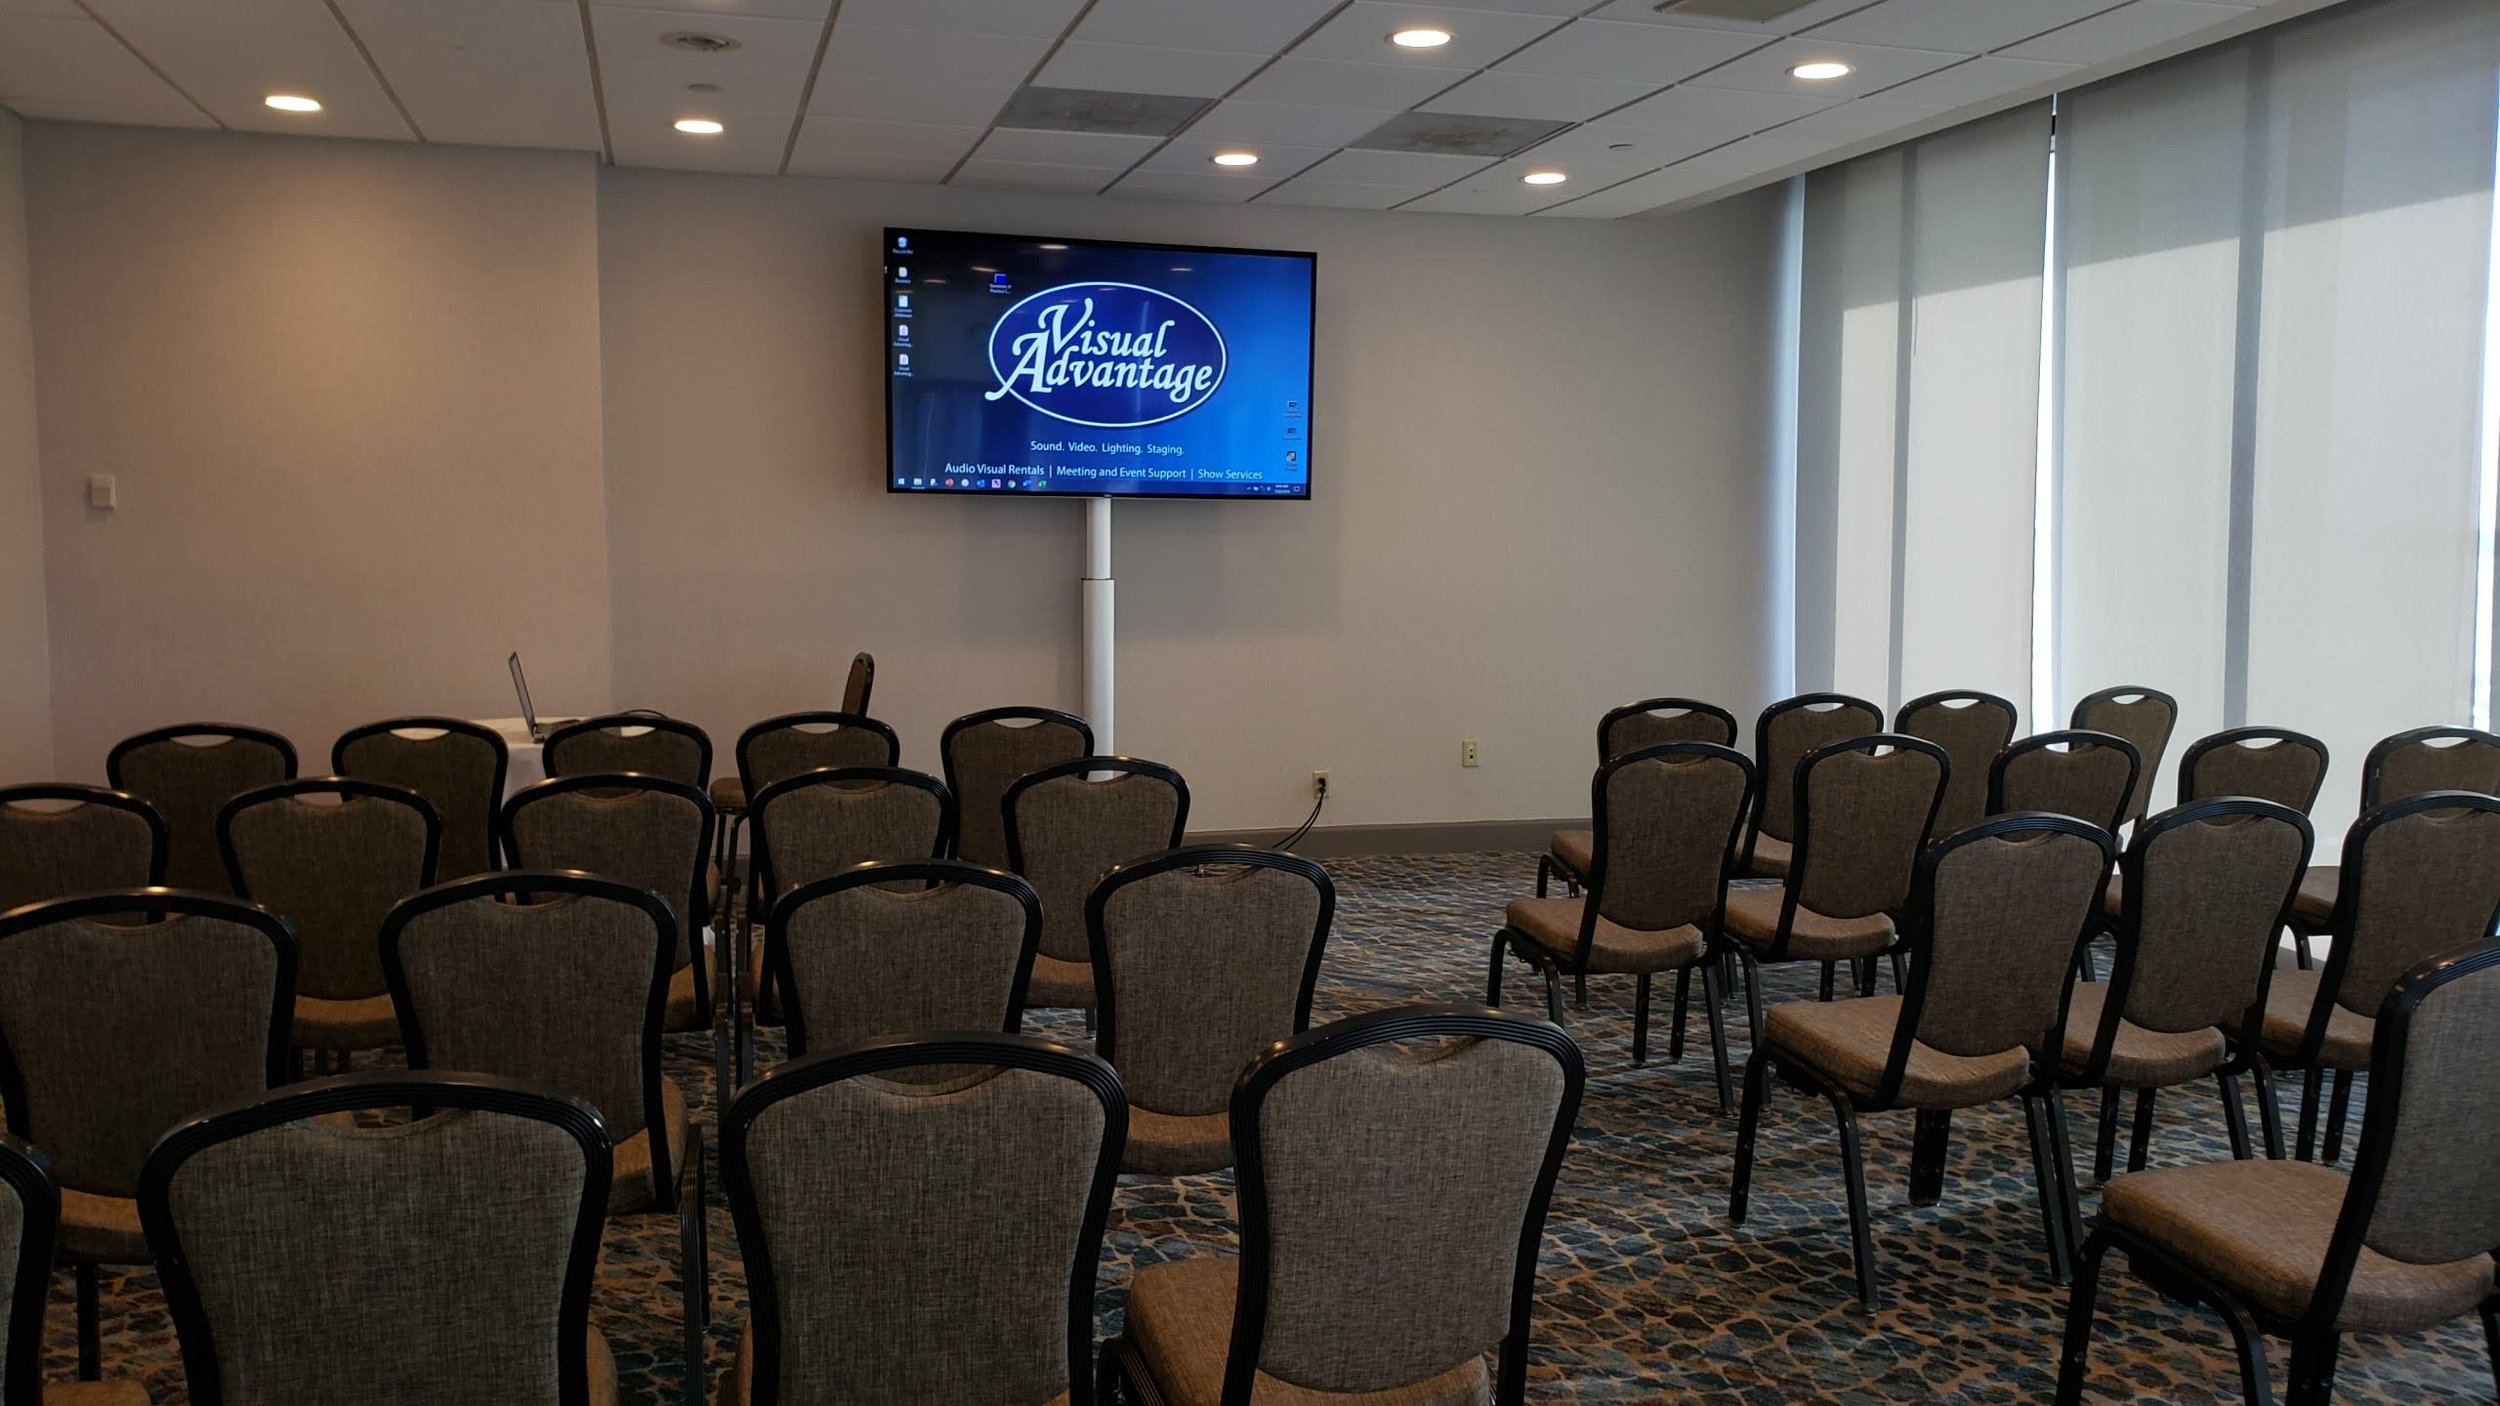 Breakout Rooms - Visual Advantage has flat screen tv rentals, projection screens, projector rentals, laptops & PowerPoint remotes for each conference breakout room at any meeting space or hotel. Add on a set of speakers & microphone to boost sound. For small-to-medium breakout rooms a 70